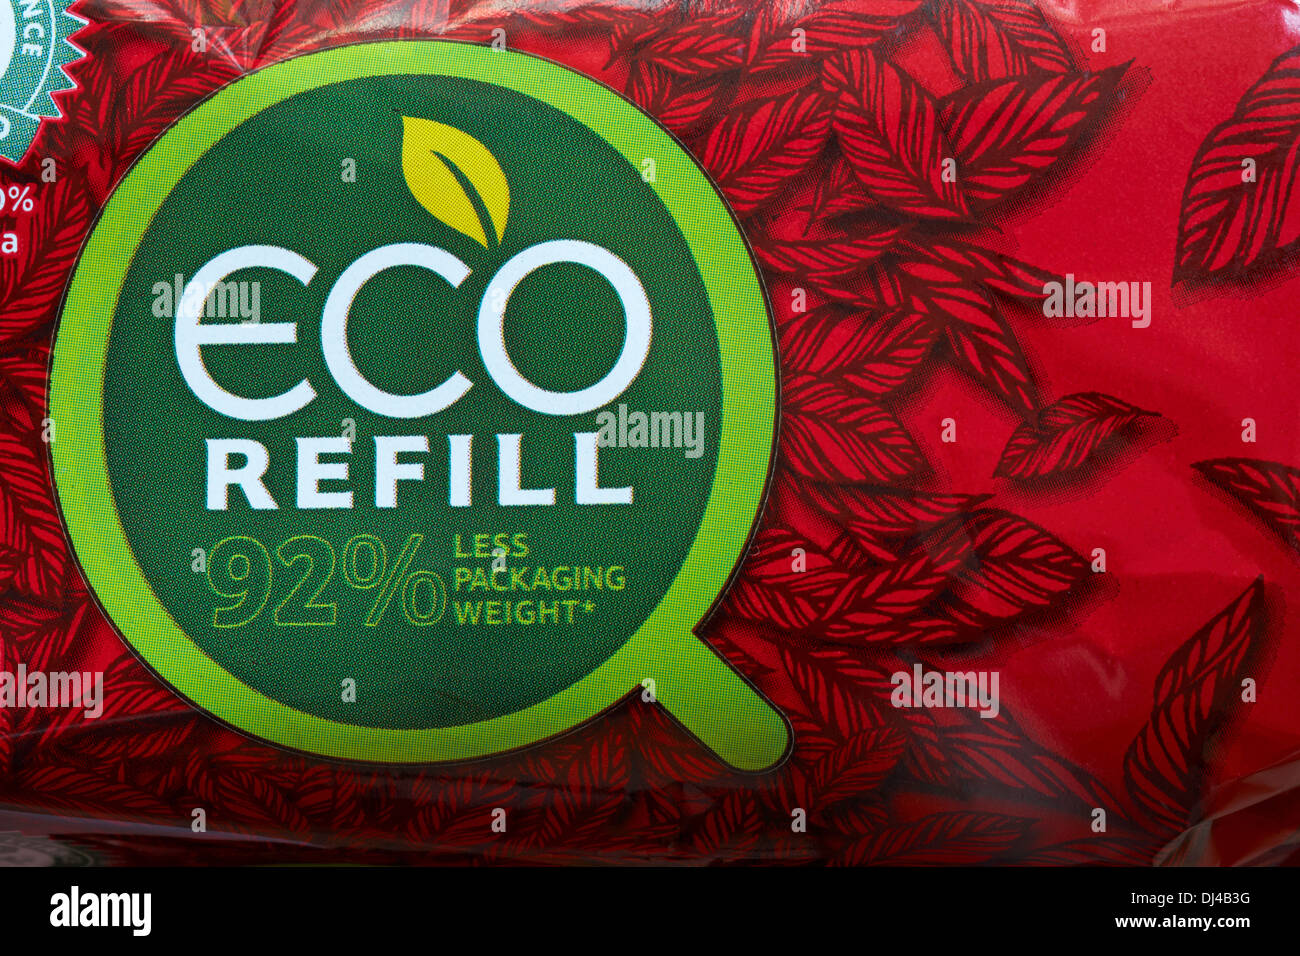 Eco refill 92% less packaging weight - information on packet of tea bags - Stock Image